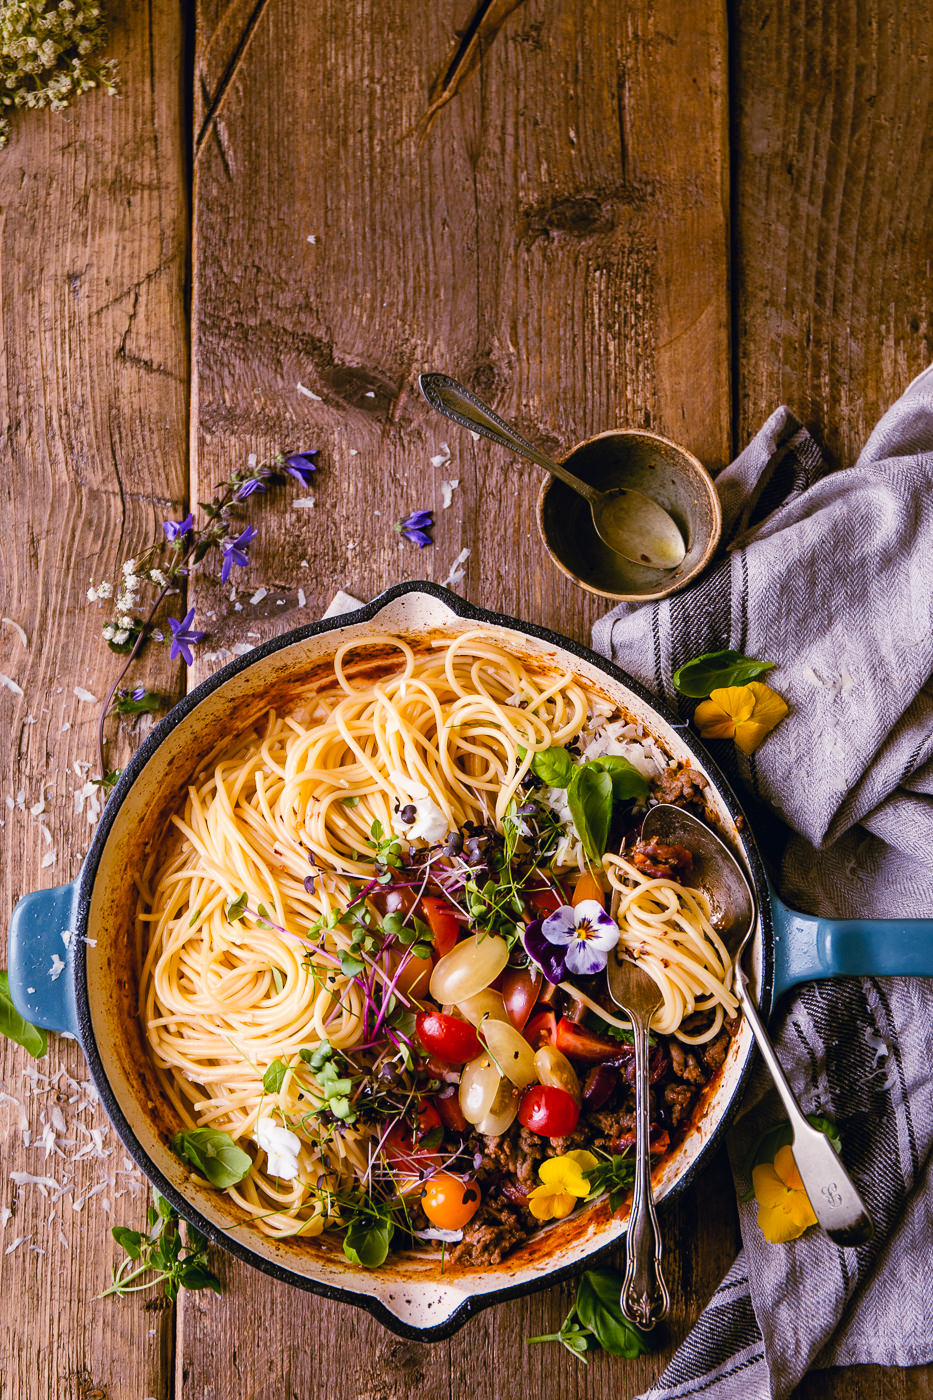 Top down photo of spaghetti, tomatoes and a bolognese sauce cooked in a blue and white cast iron skillet, garnished with herbs with a black and white textile on a rustic wooden table top